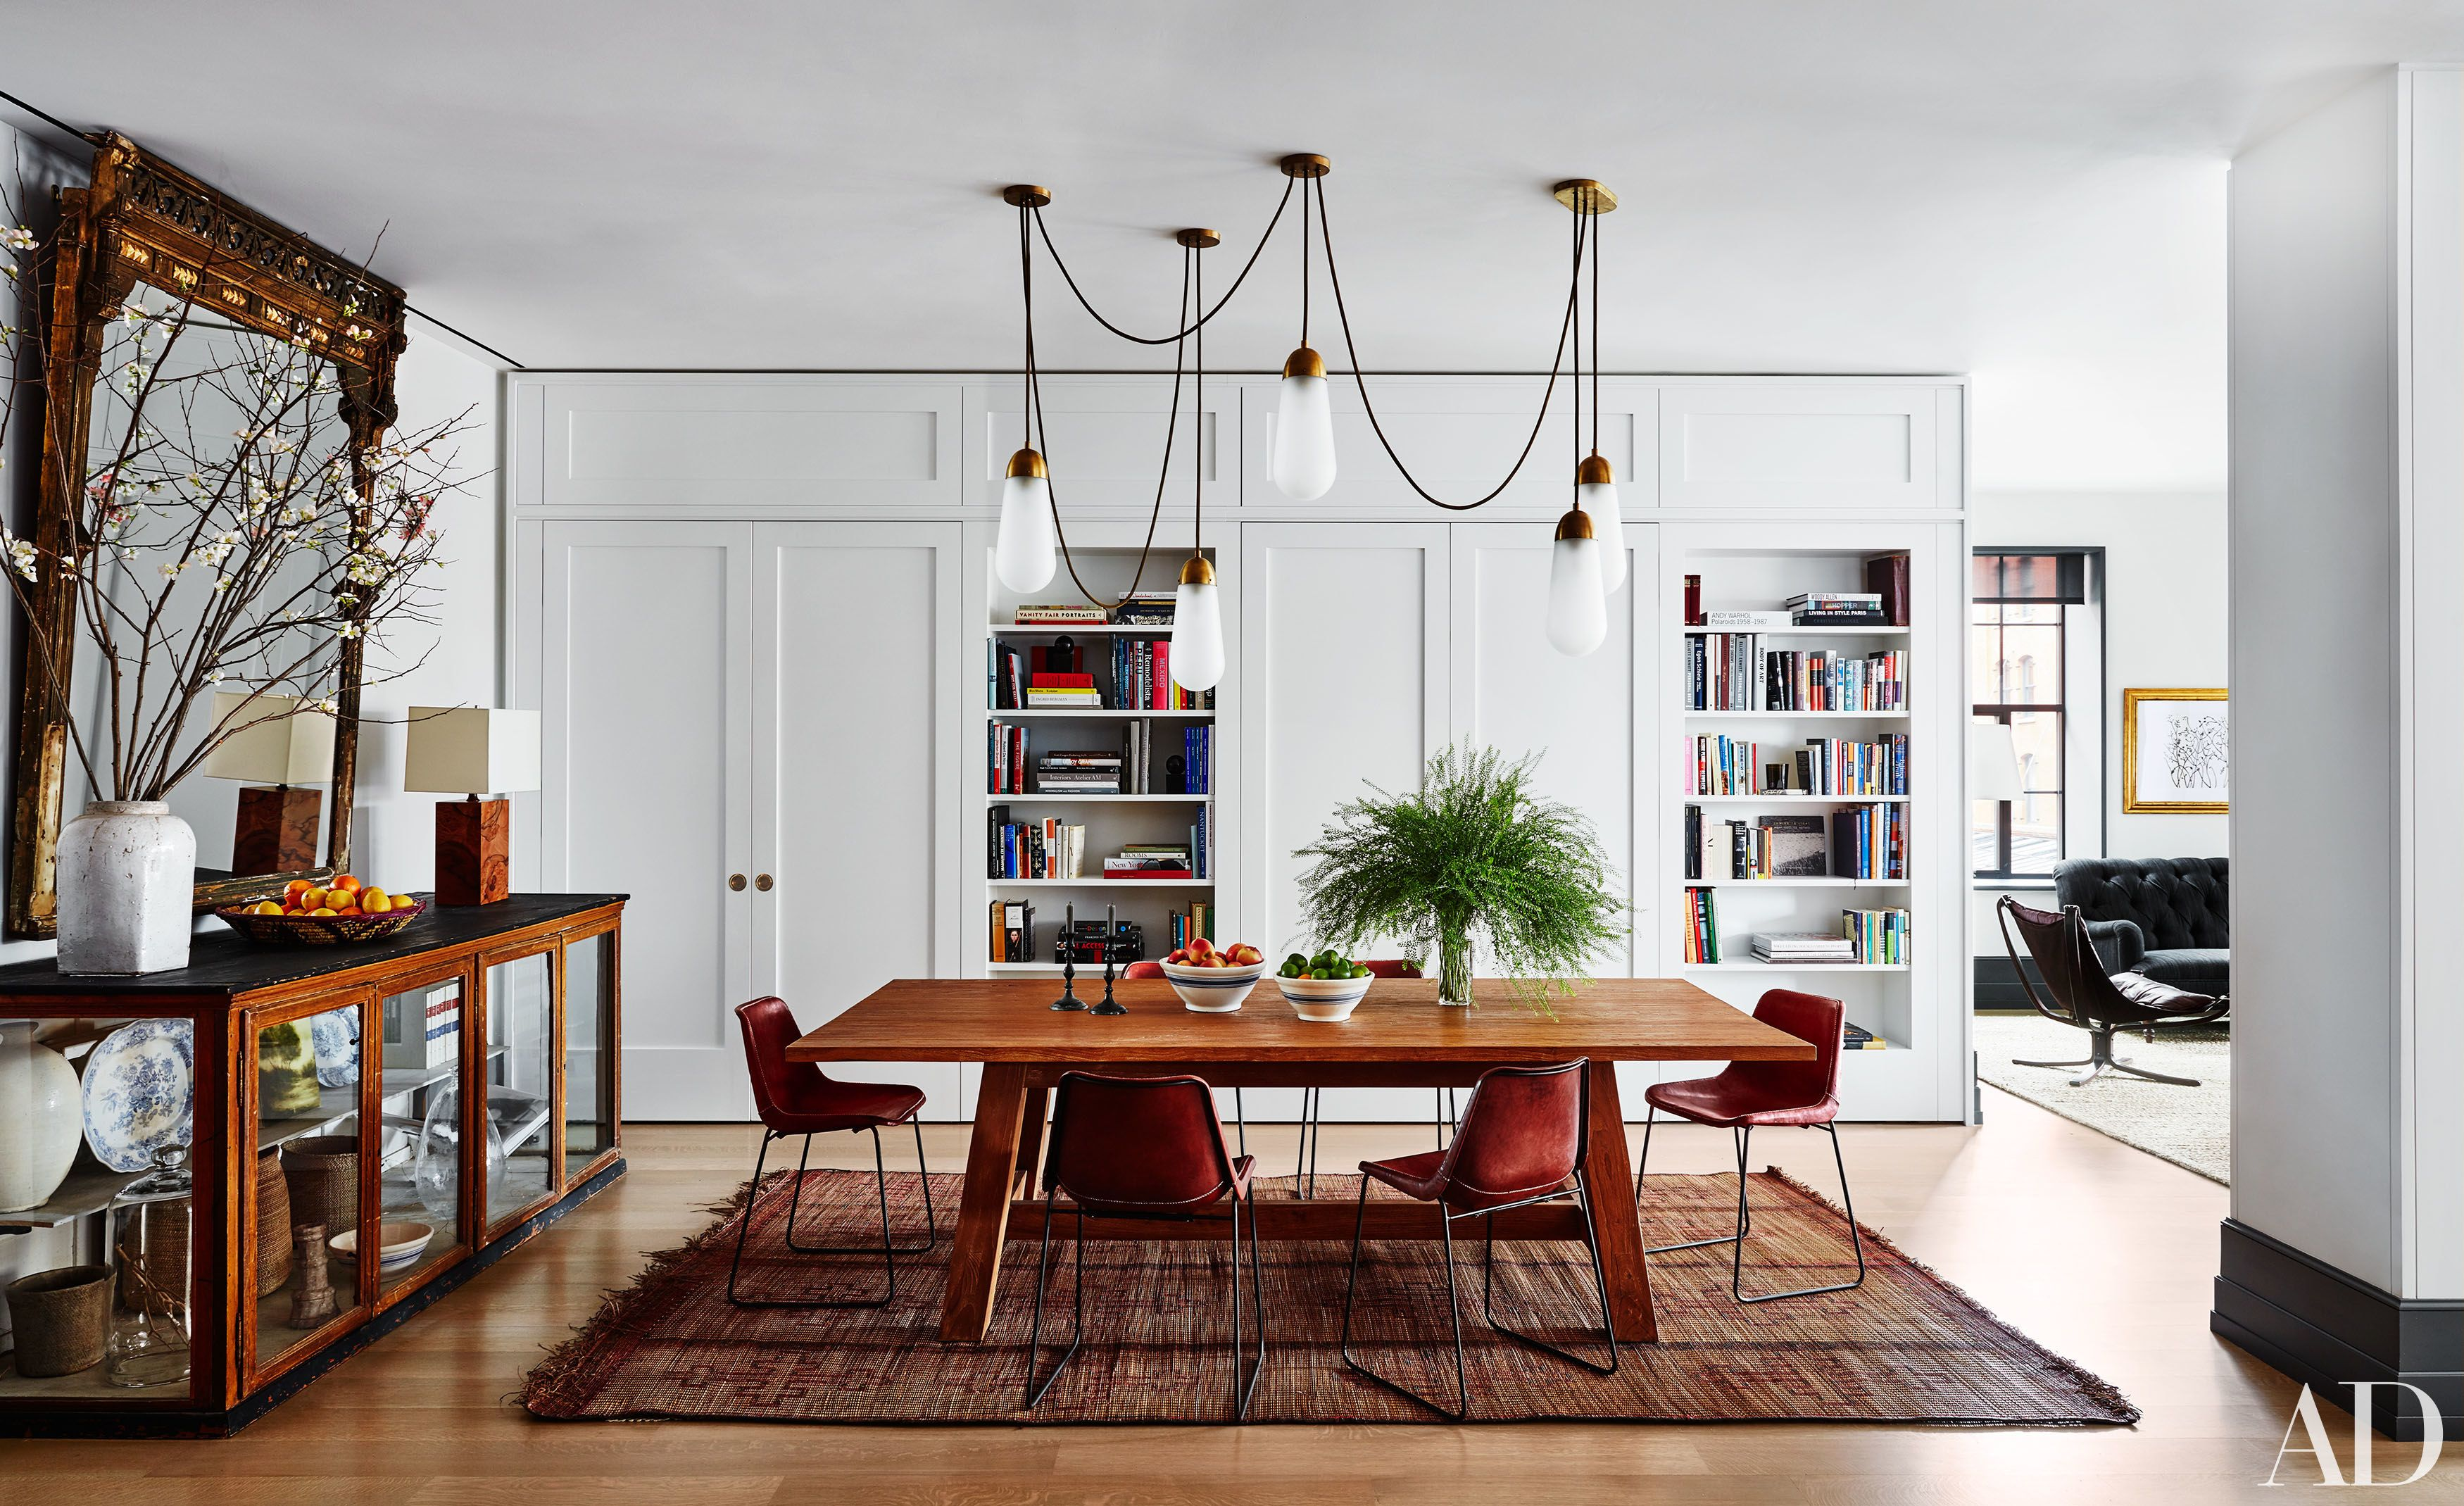 Dining Room New York Naomi Watts And Liev Schreiber's Stunning New York City Apartment